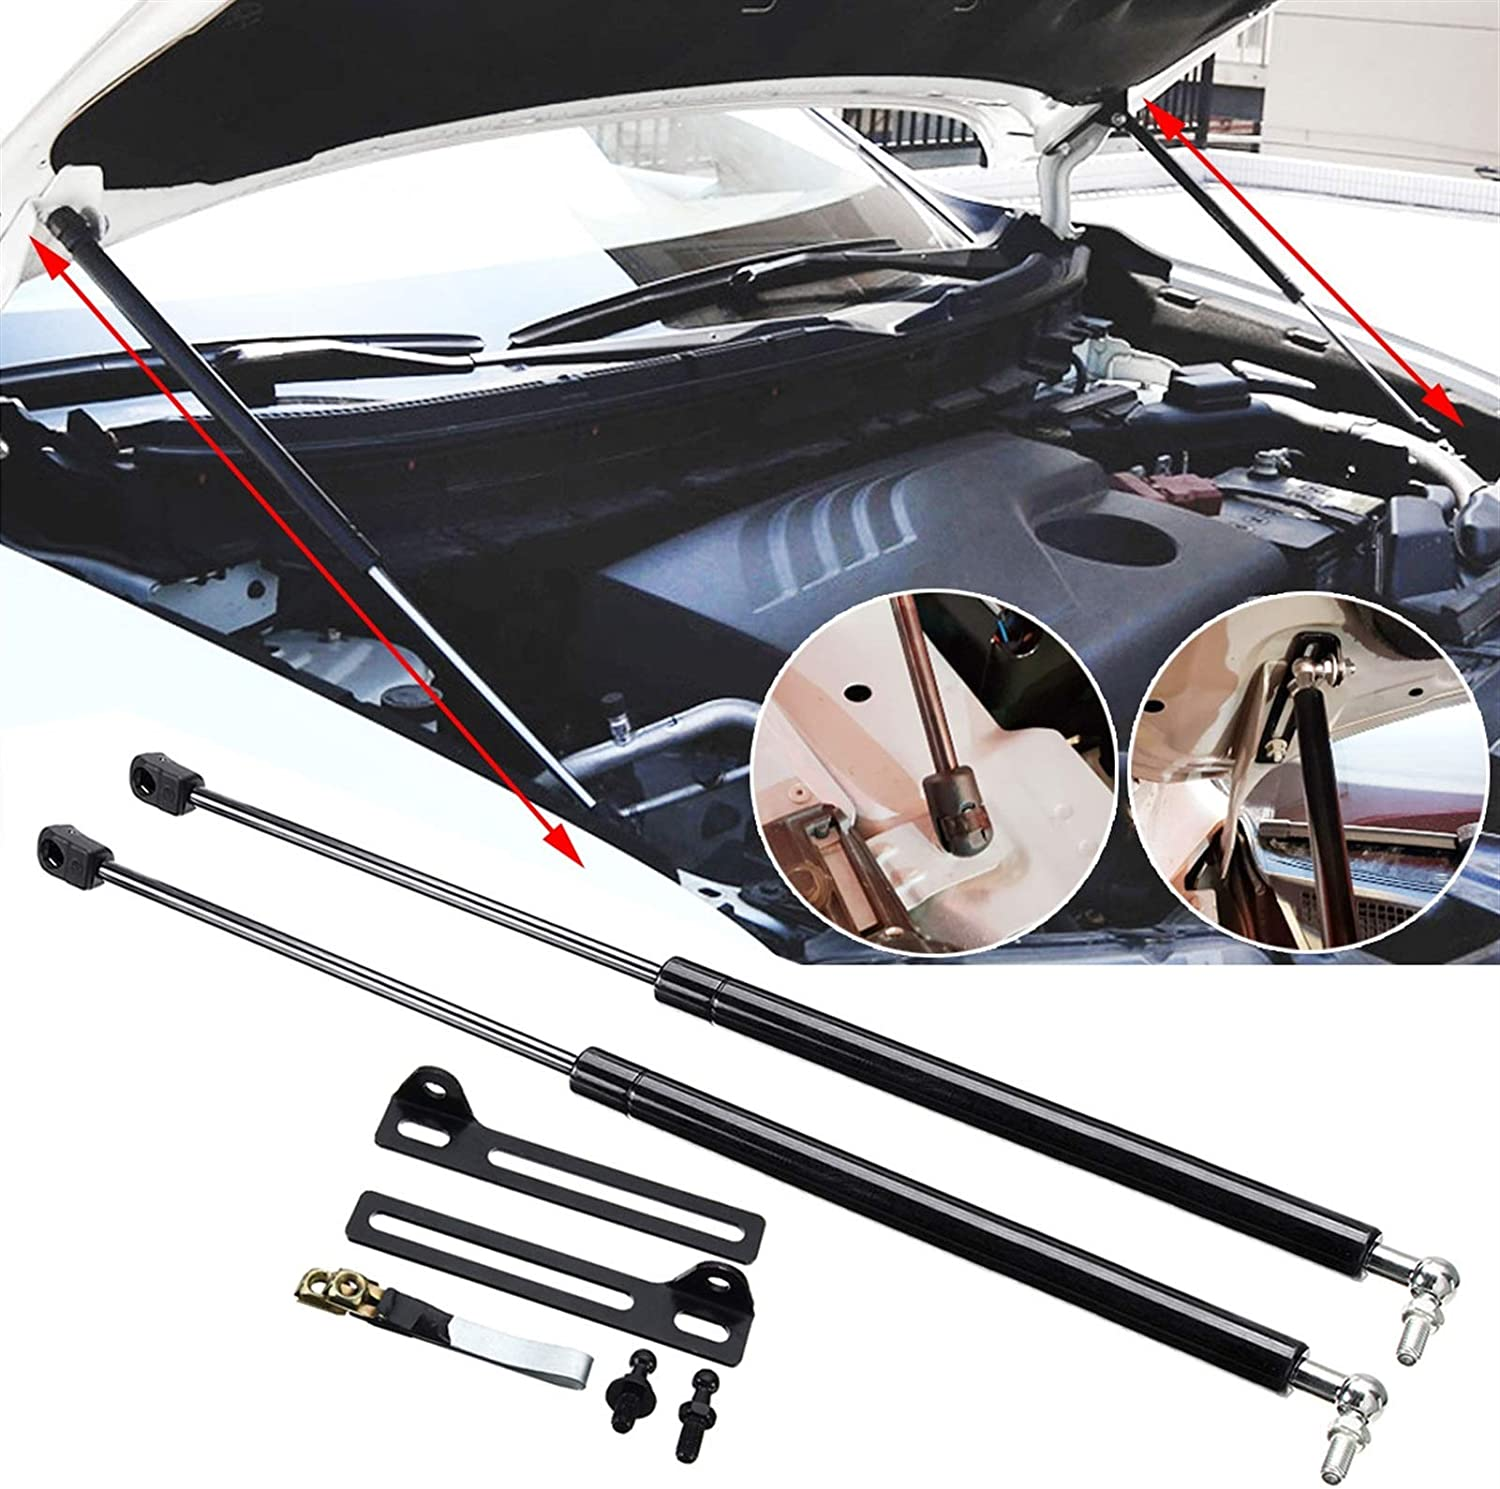 ZLLD Lift Support Struts 2pcs Hood Engine Los Angeles Mall Reservation Car Front